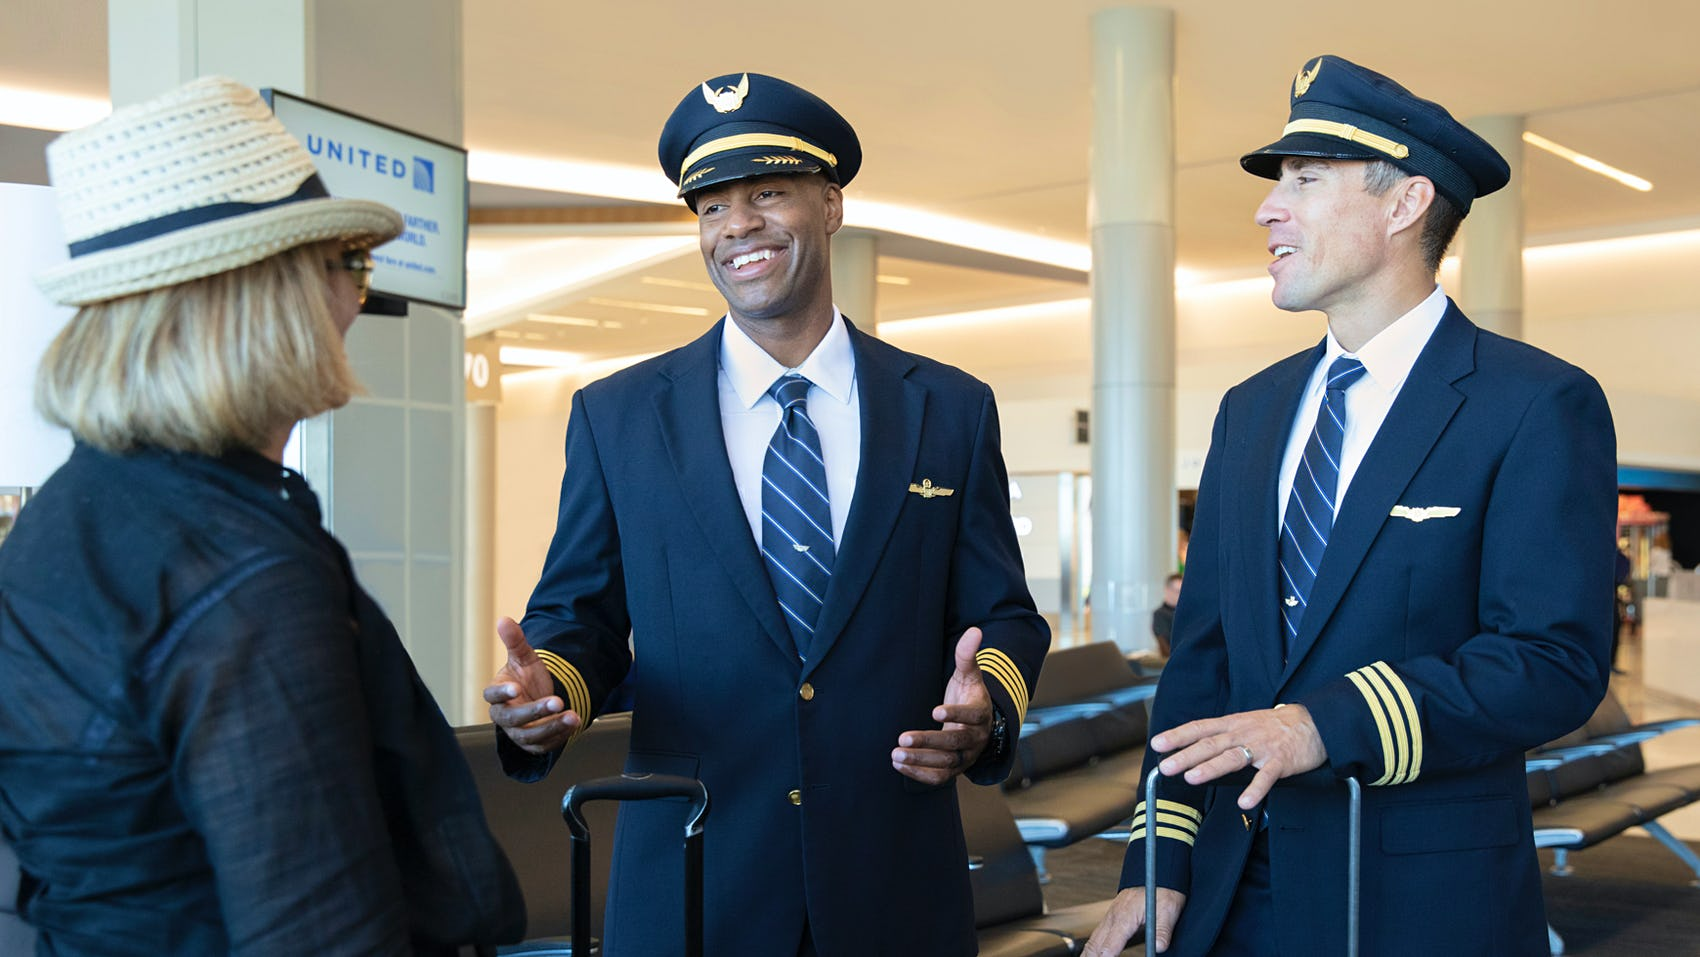 United Airlines Pilots Customer Experience